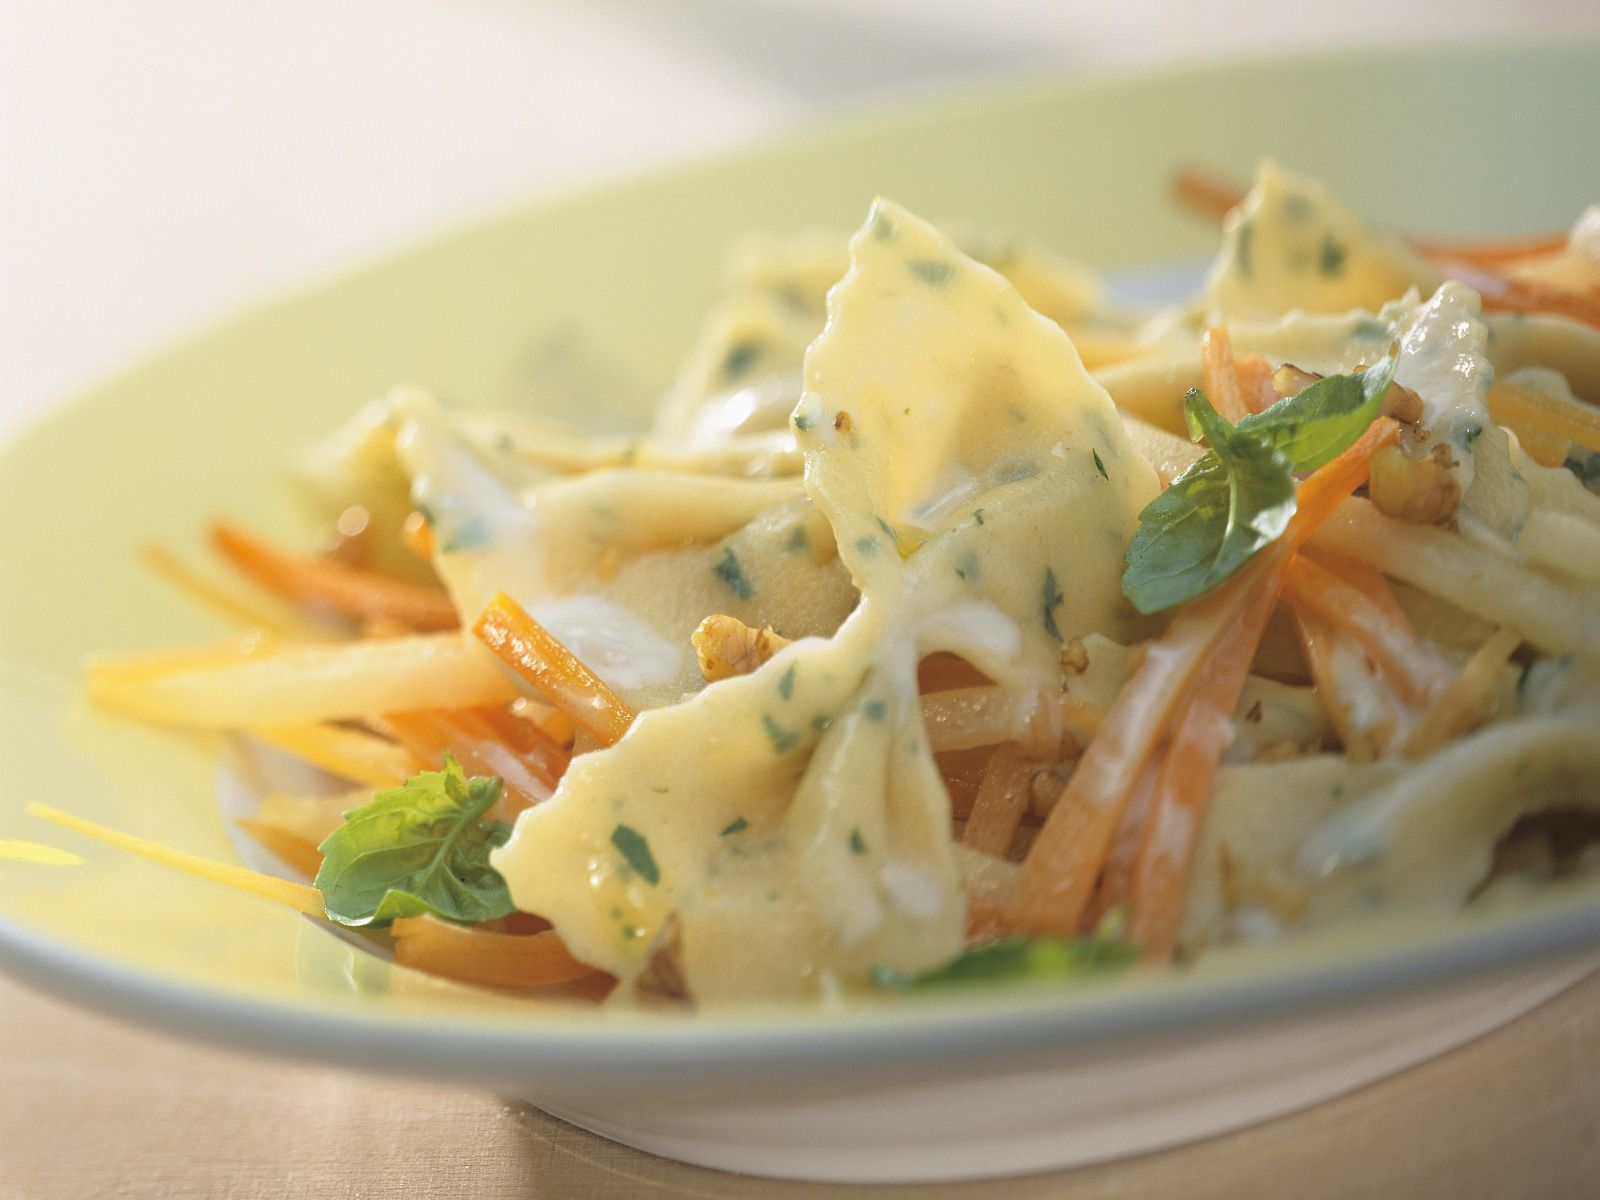 Herb Pasta With Carrots Kohlrabi And Gorgonzola Sauce Recipe Eat Smarter Usa